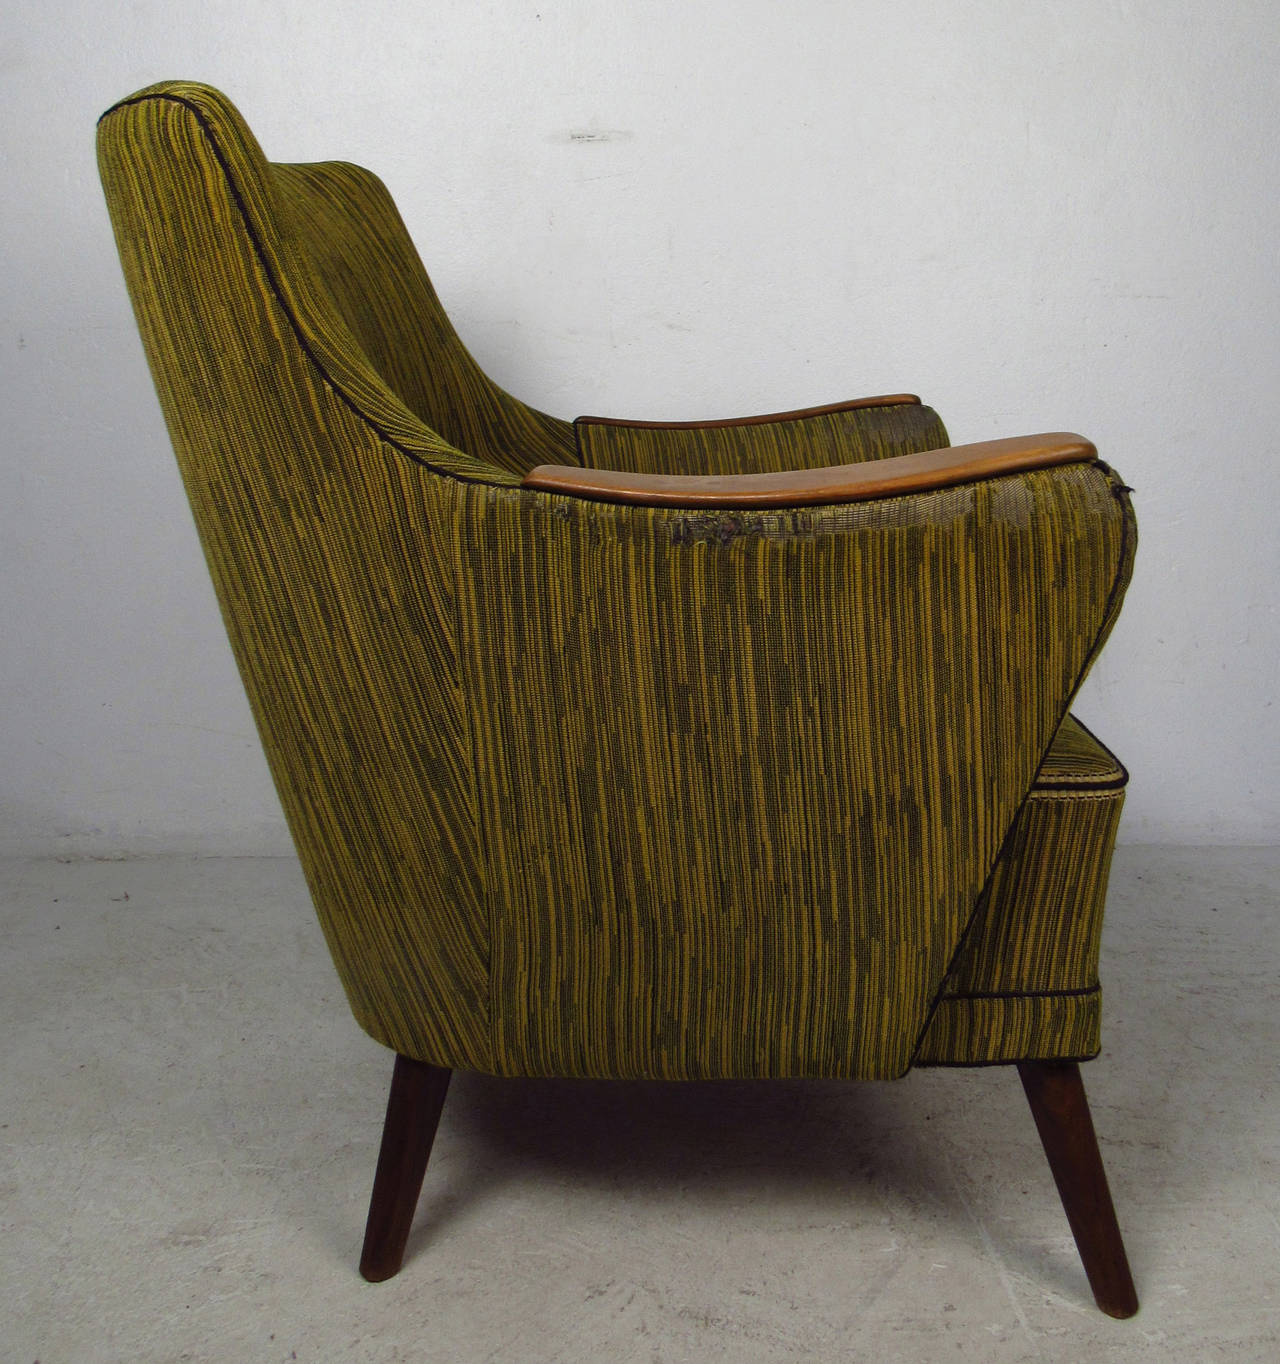 Midcentury Mogens Lassen Style Lounge Chair For Sale 4